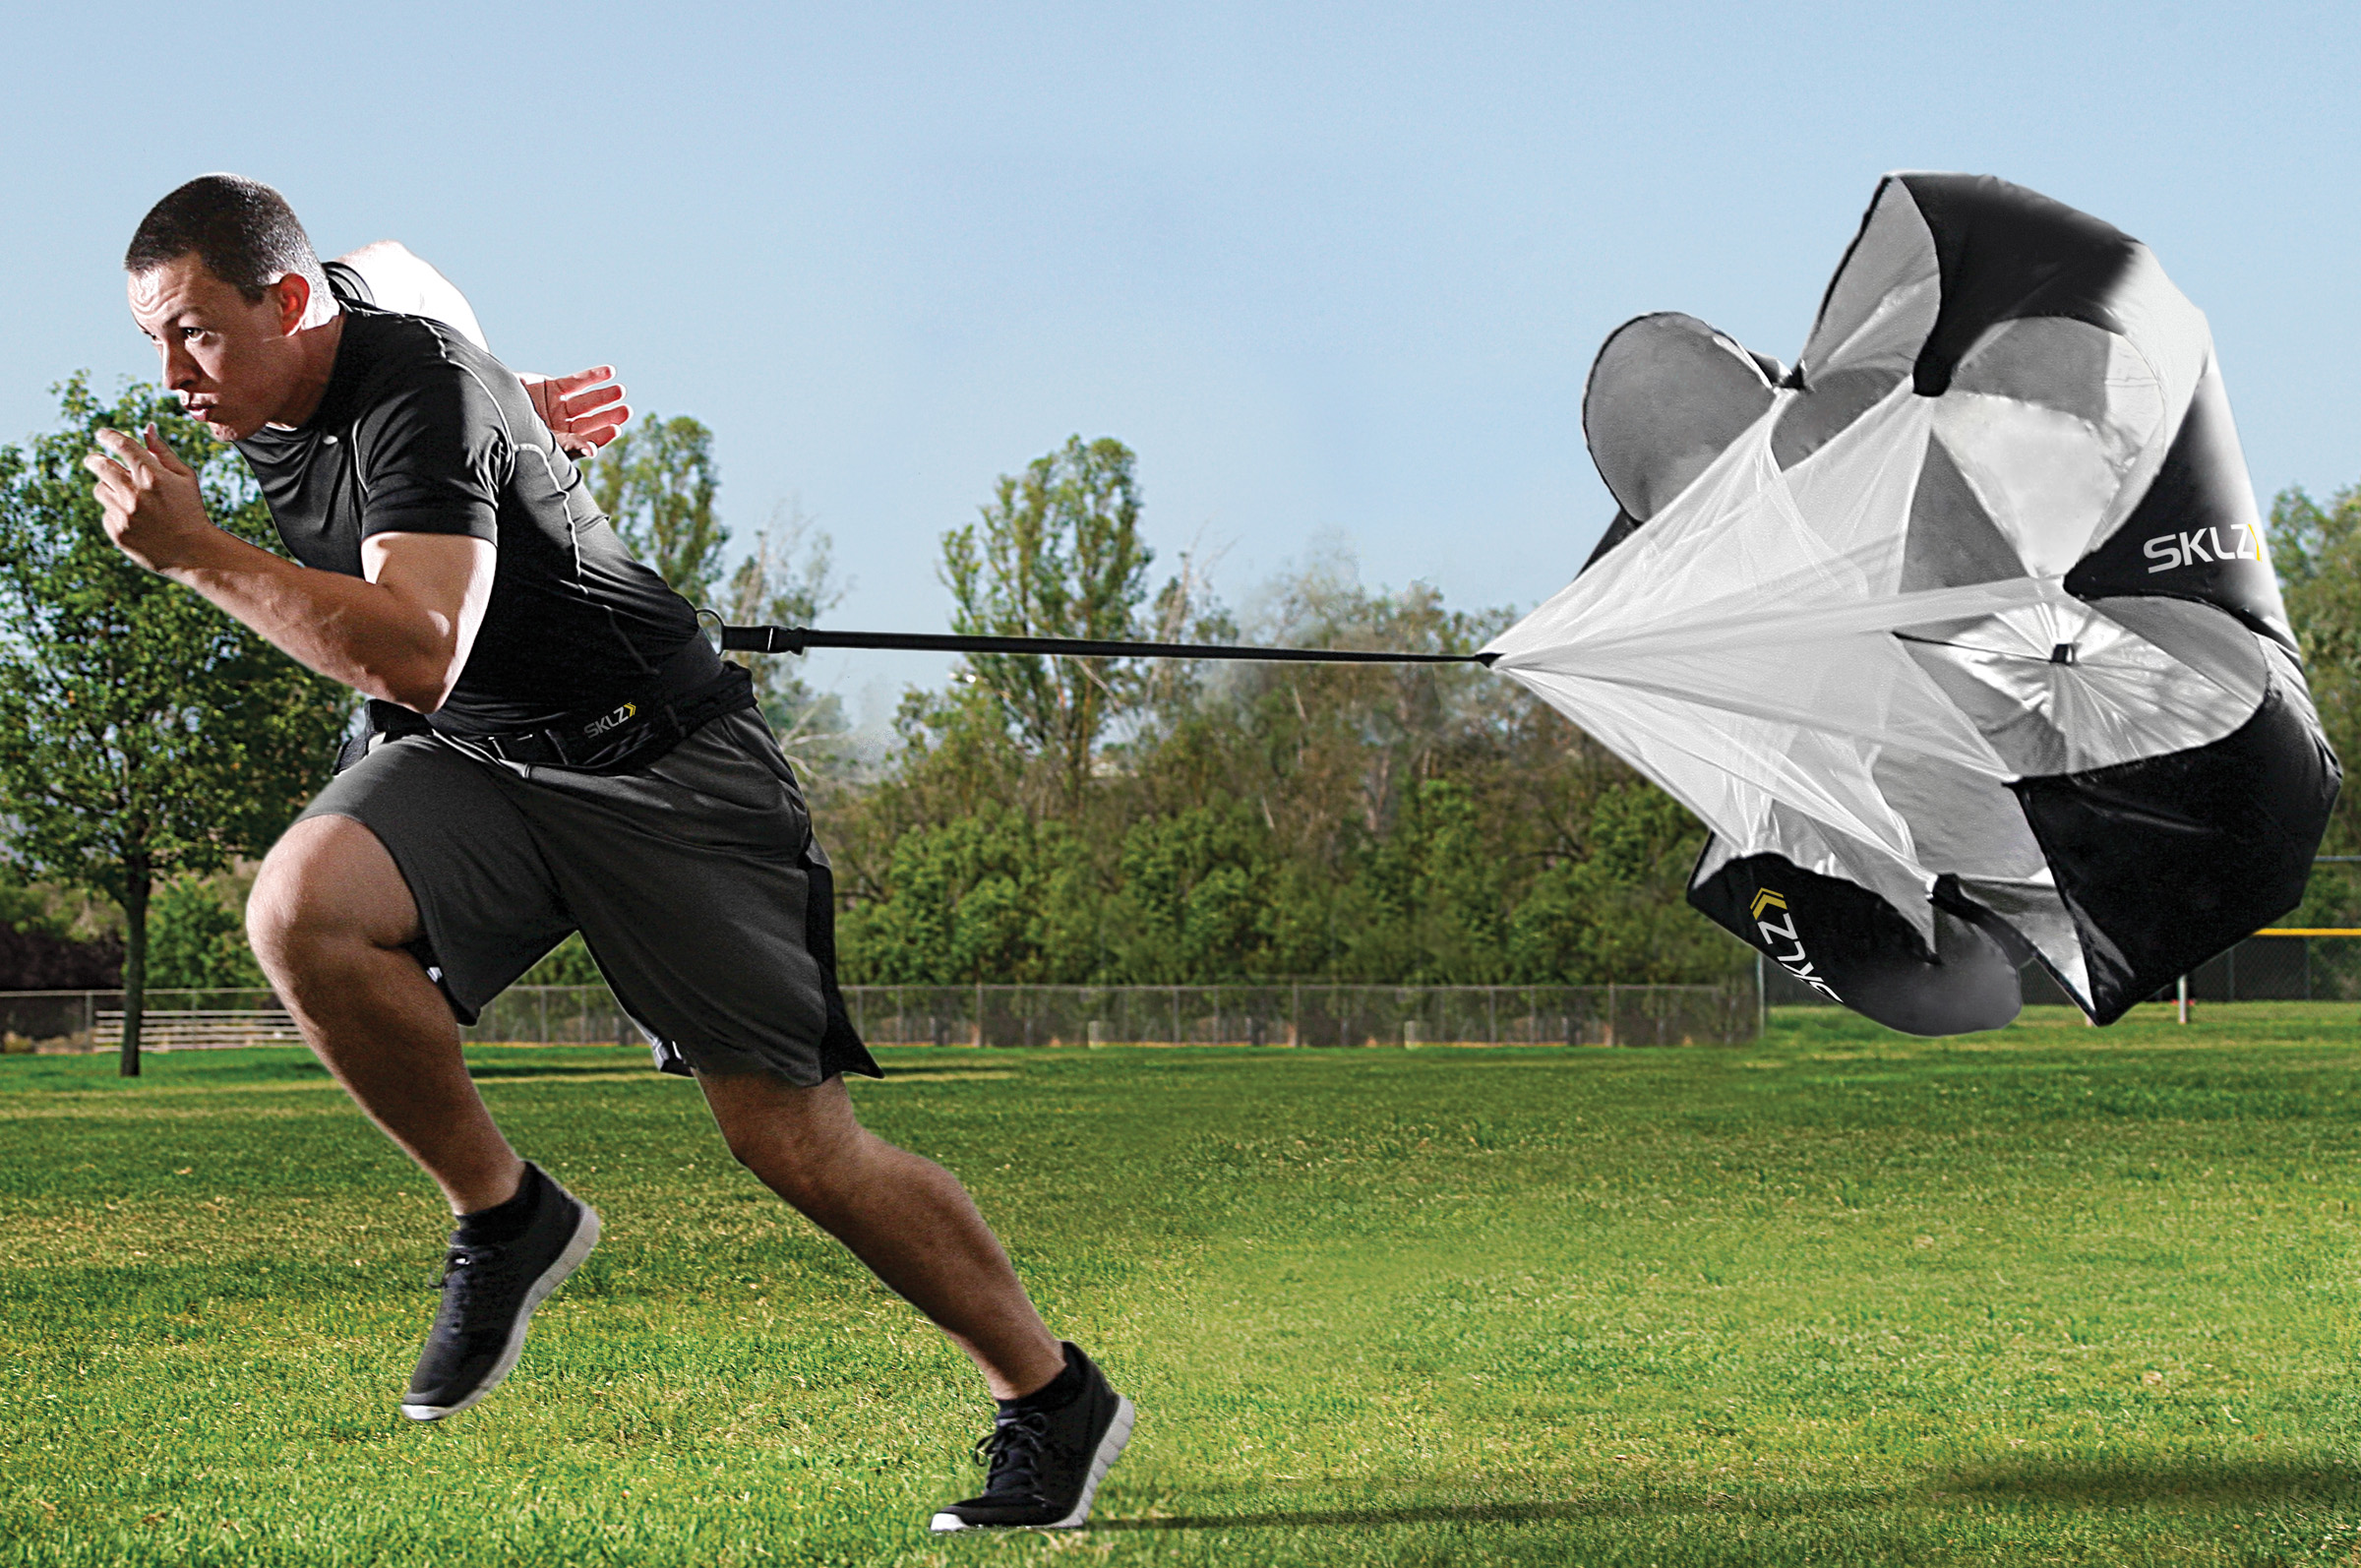 Resistance Parachute For Speed And Acceleration Training -SKLZ